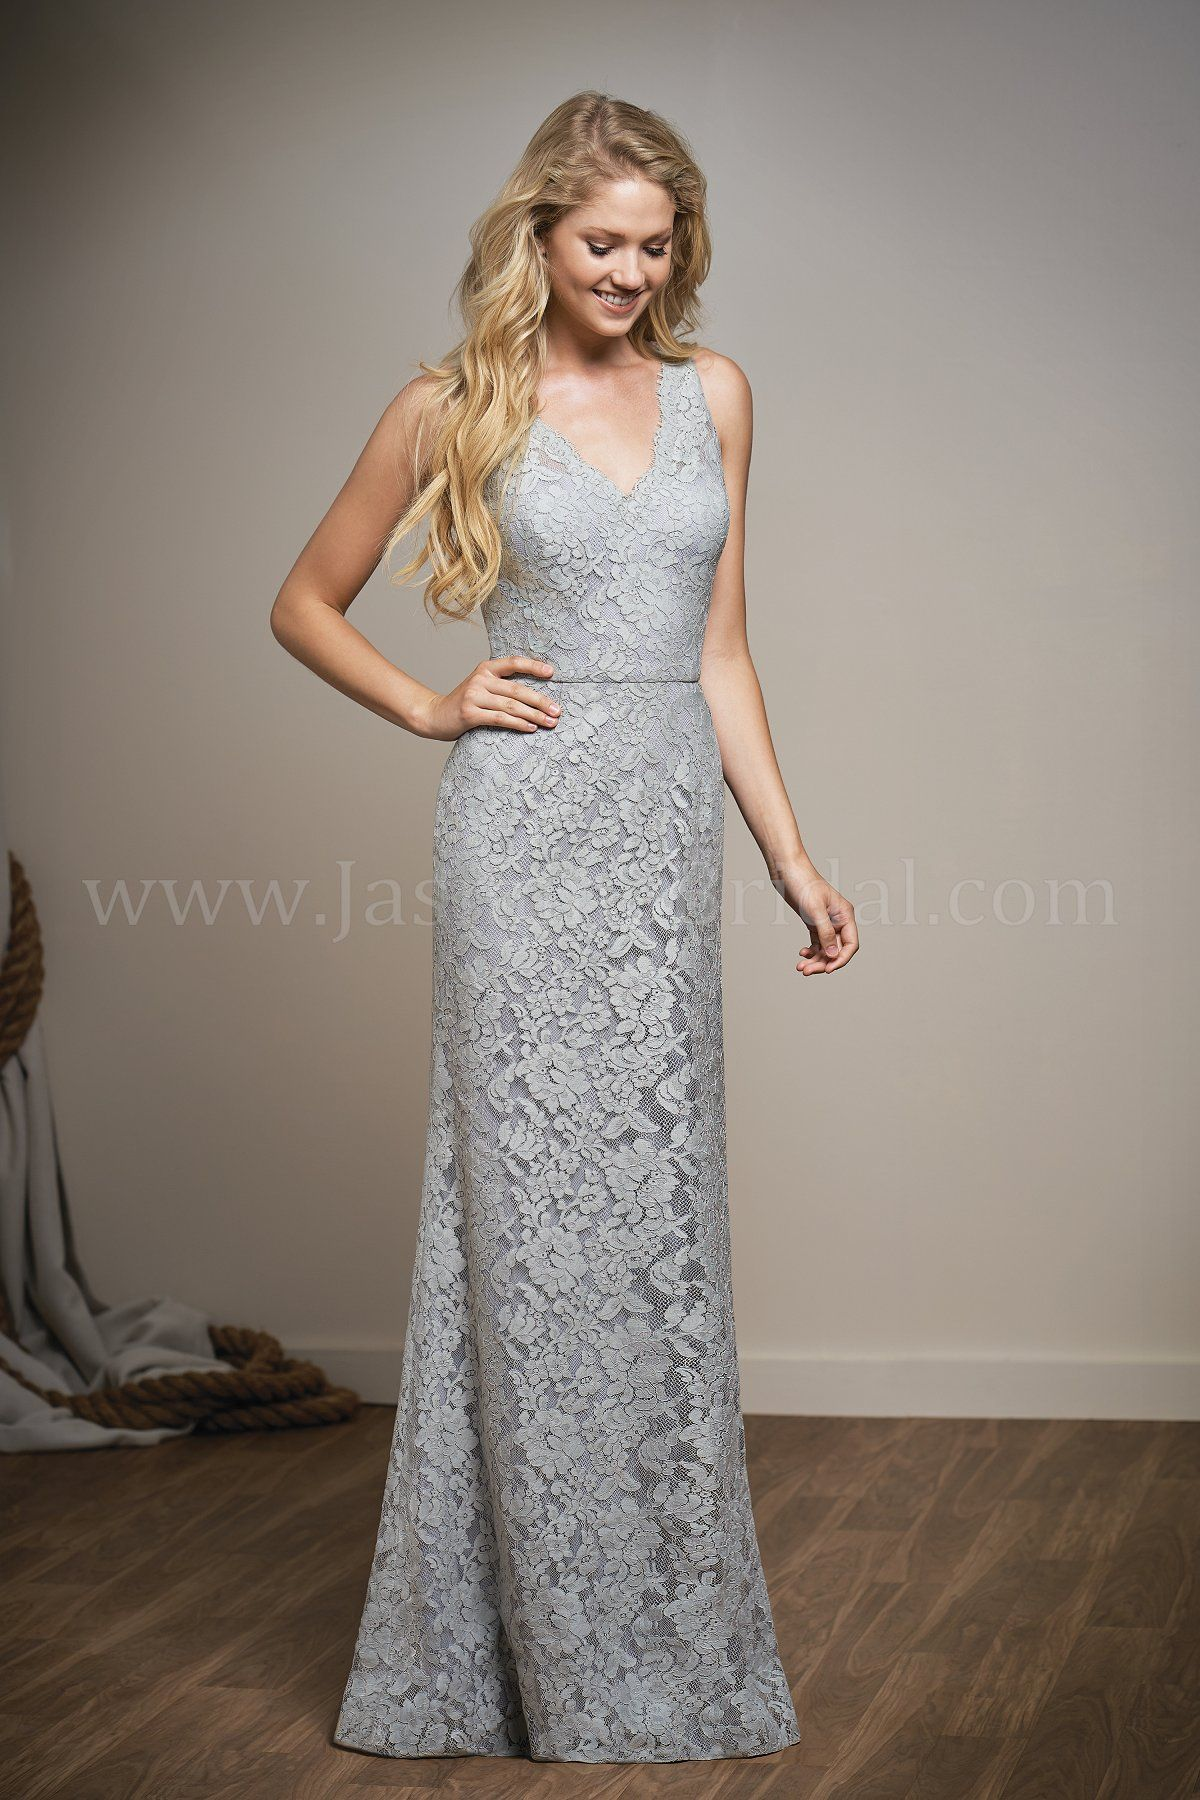 Jasmine bridal belsoie style l204008 in silver belsoie lace wedding dress ombrellifo Images